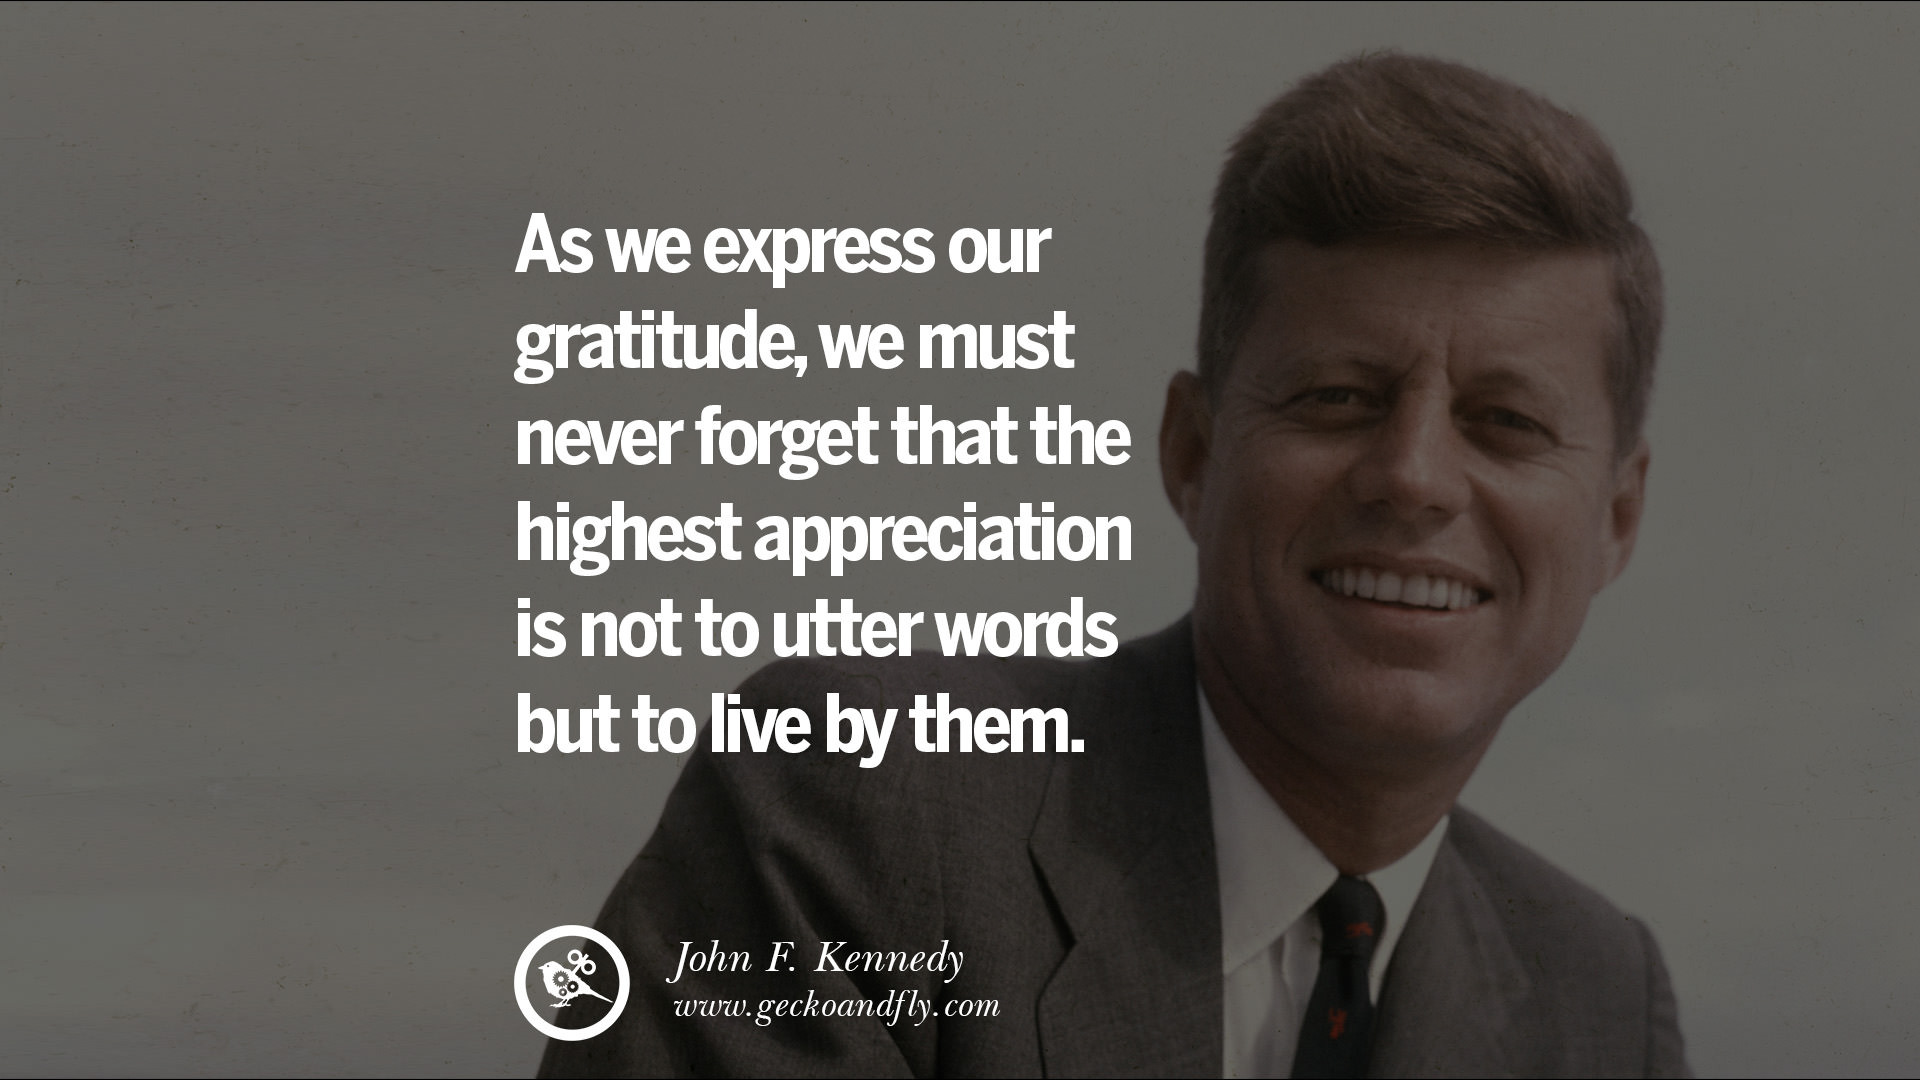 famous president john f kennedy quotes on dom peace war